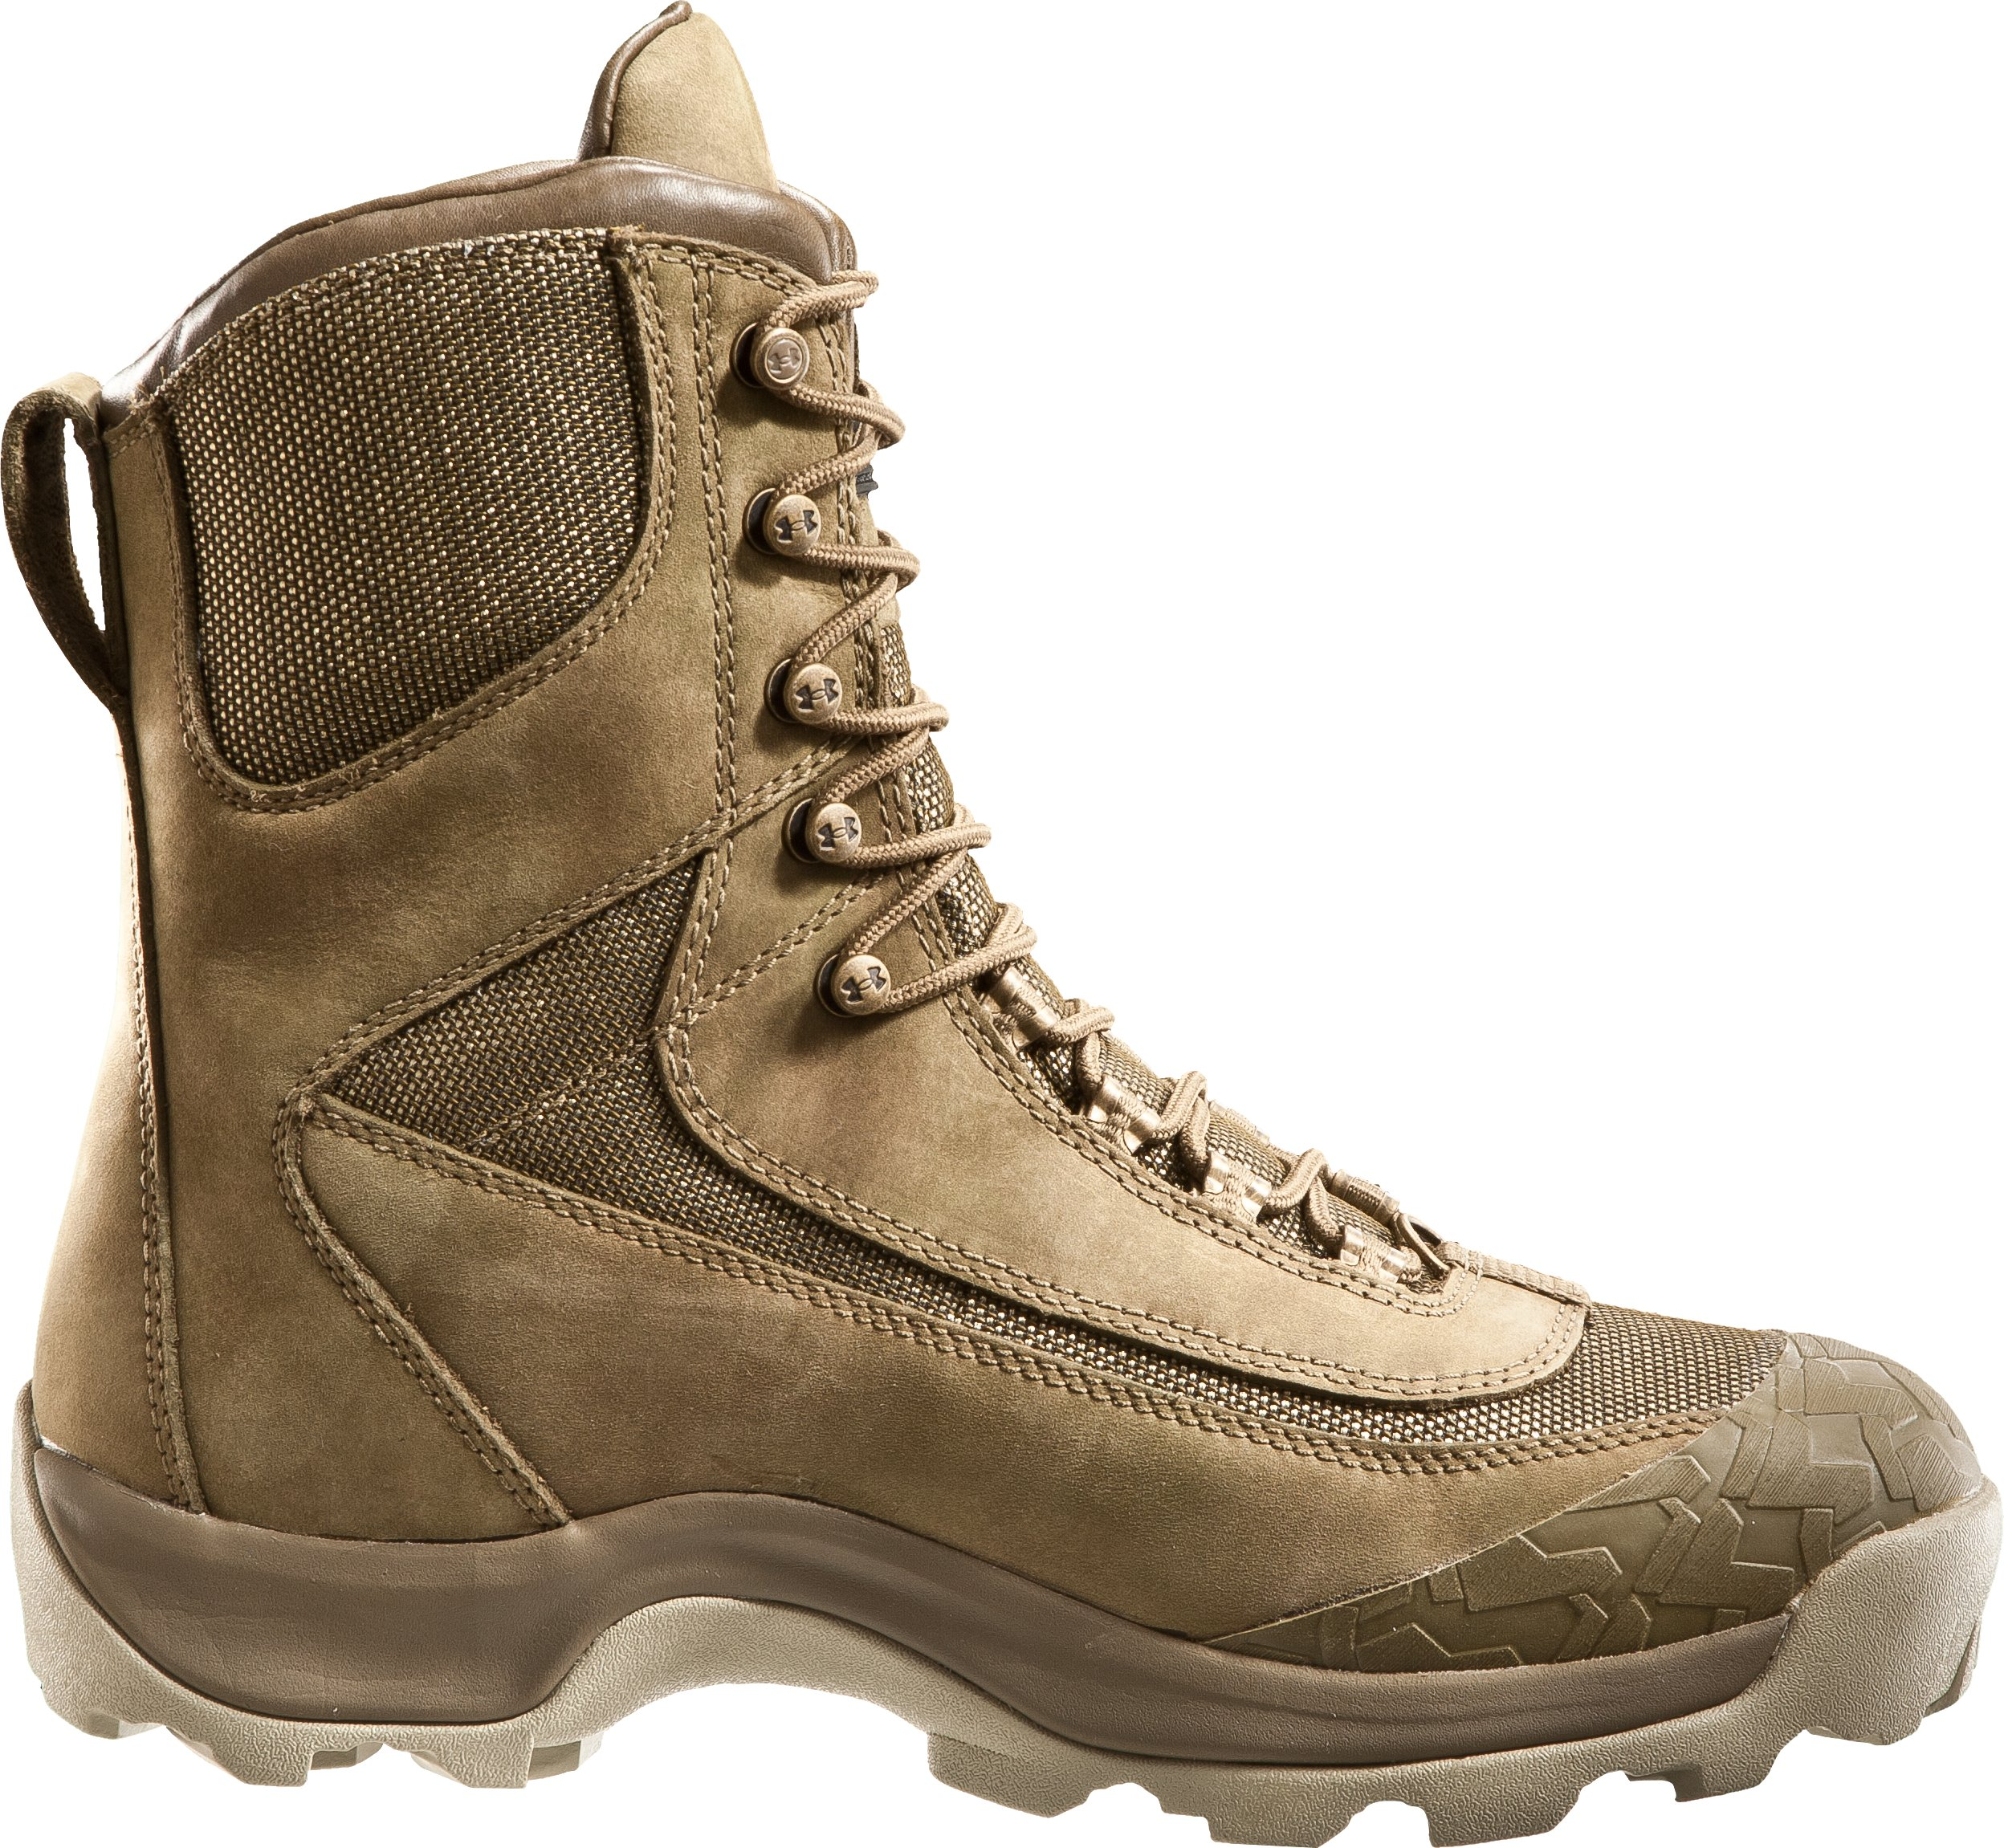 "Men's Ridge Reaper™ 8.5"" Hunting Boots, Military Olive"